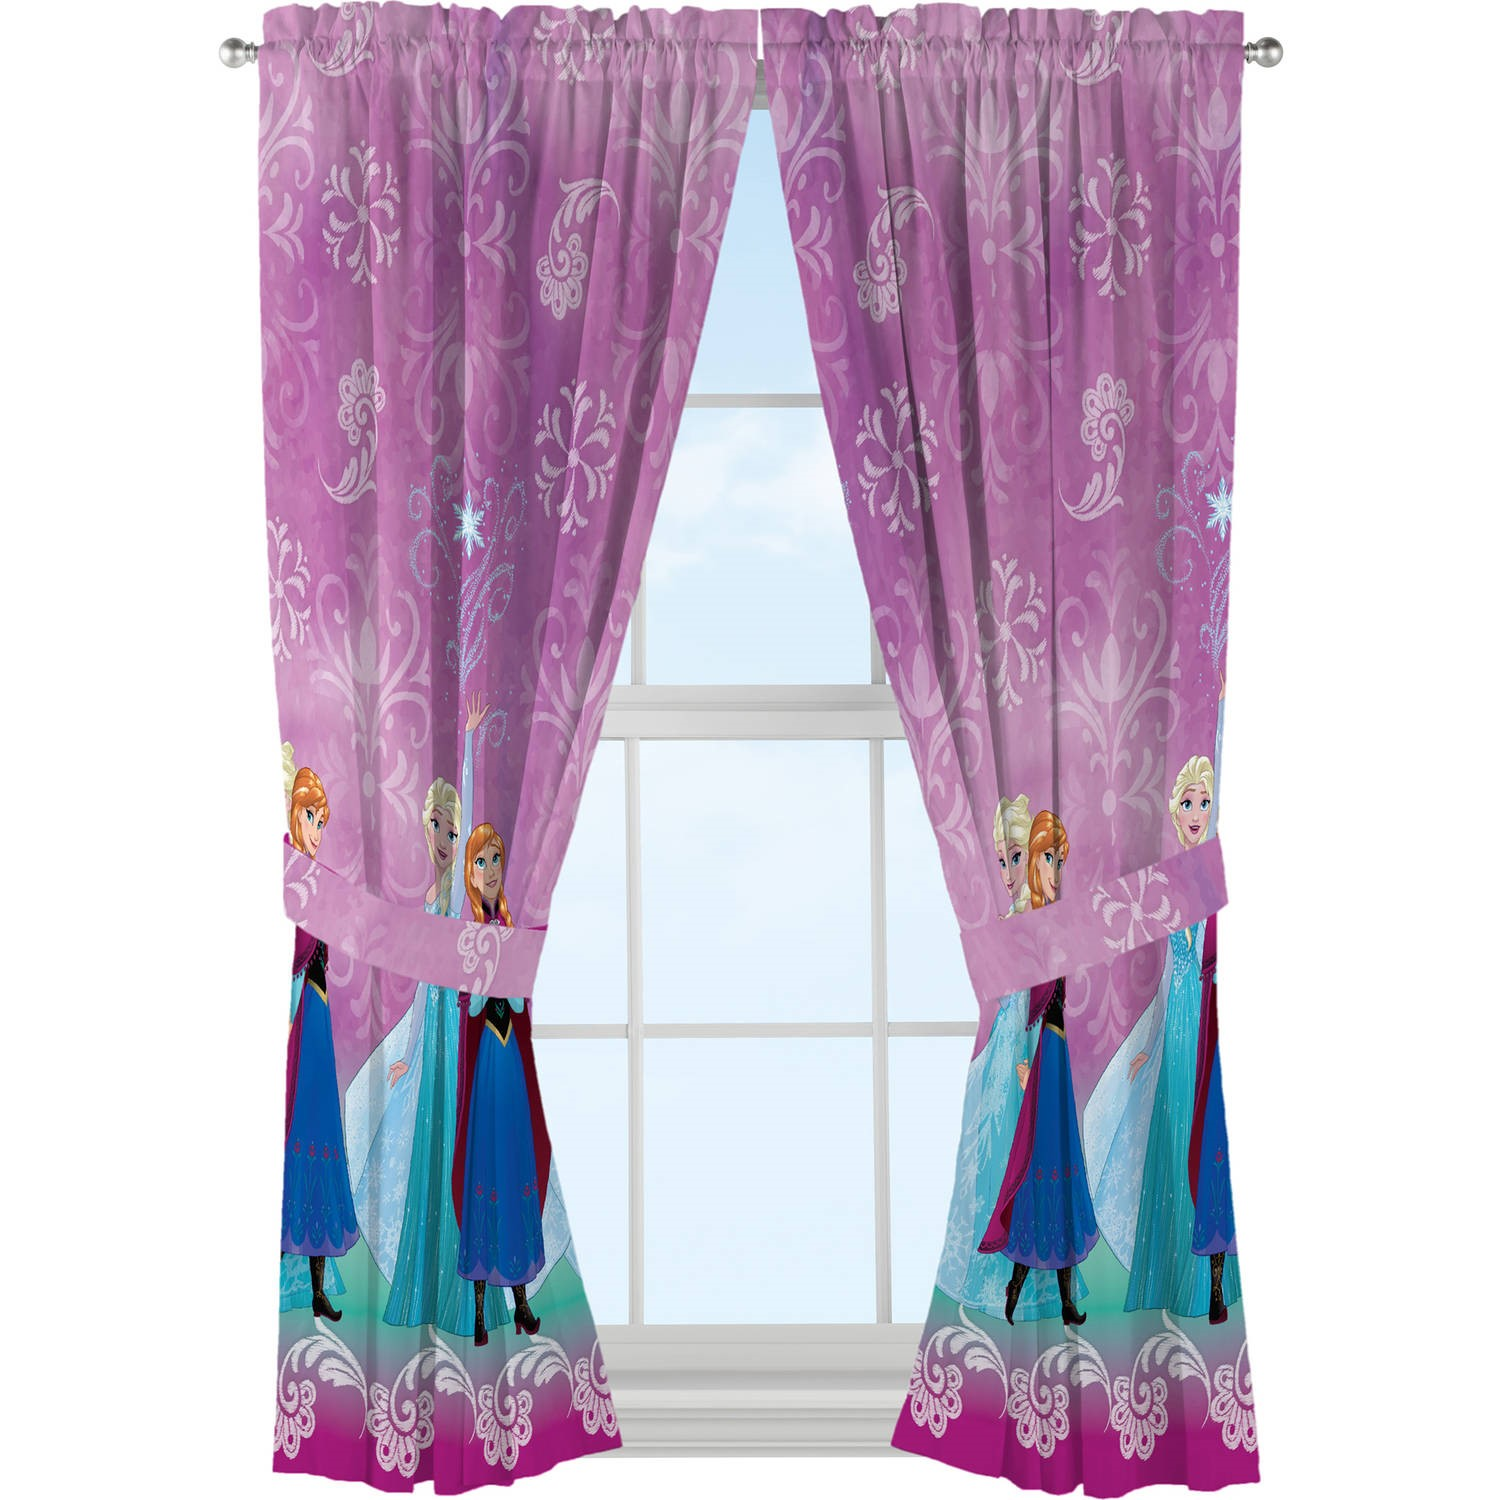 Disney's Frozen 'Nordic Wonder' Girls Bedroom Curtains